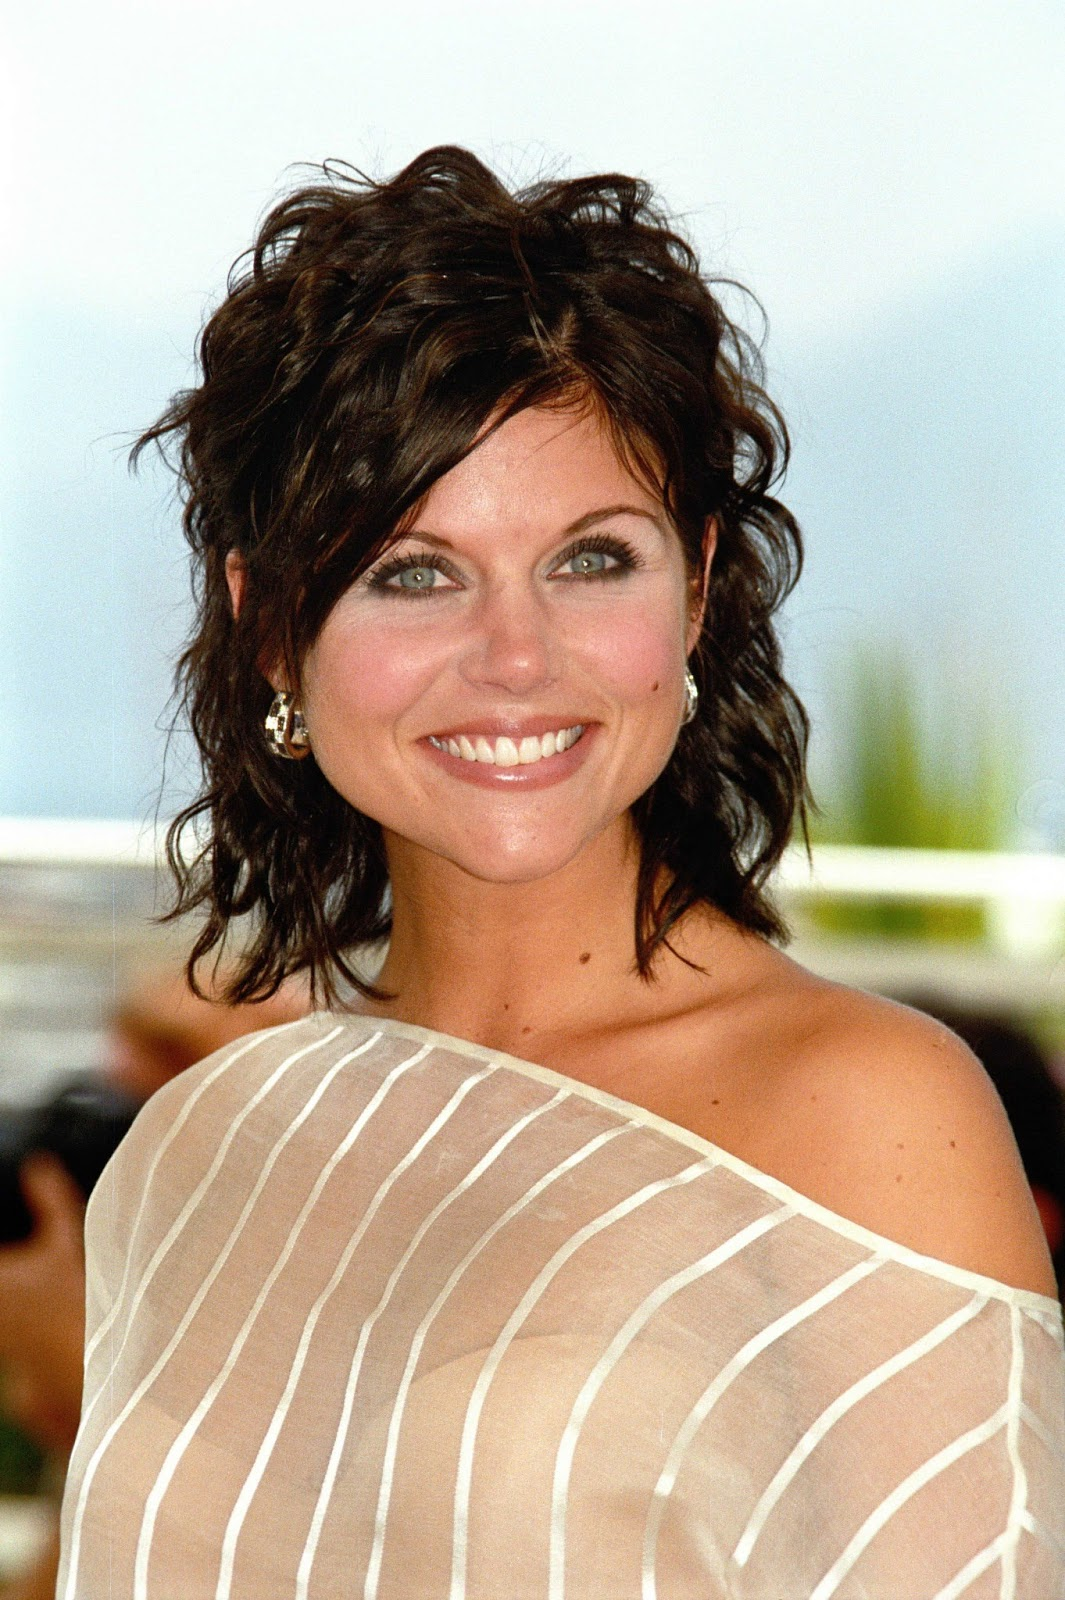 nude tiffany amber thesis Watch free nude pic of tiffani amber thiessen porn videos for free, here on pornhubcom sort movies by most relevant and catch the best free nude pic of tiffani amber thiessen movies now.